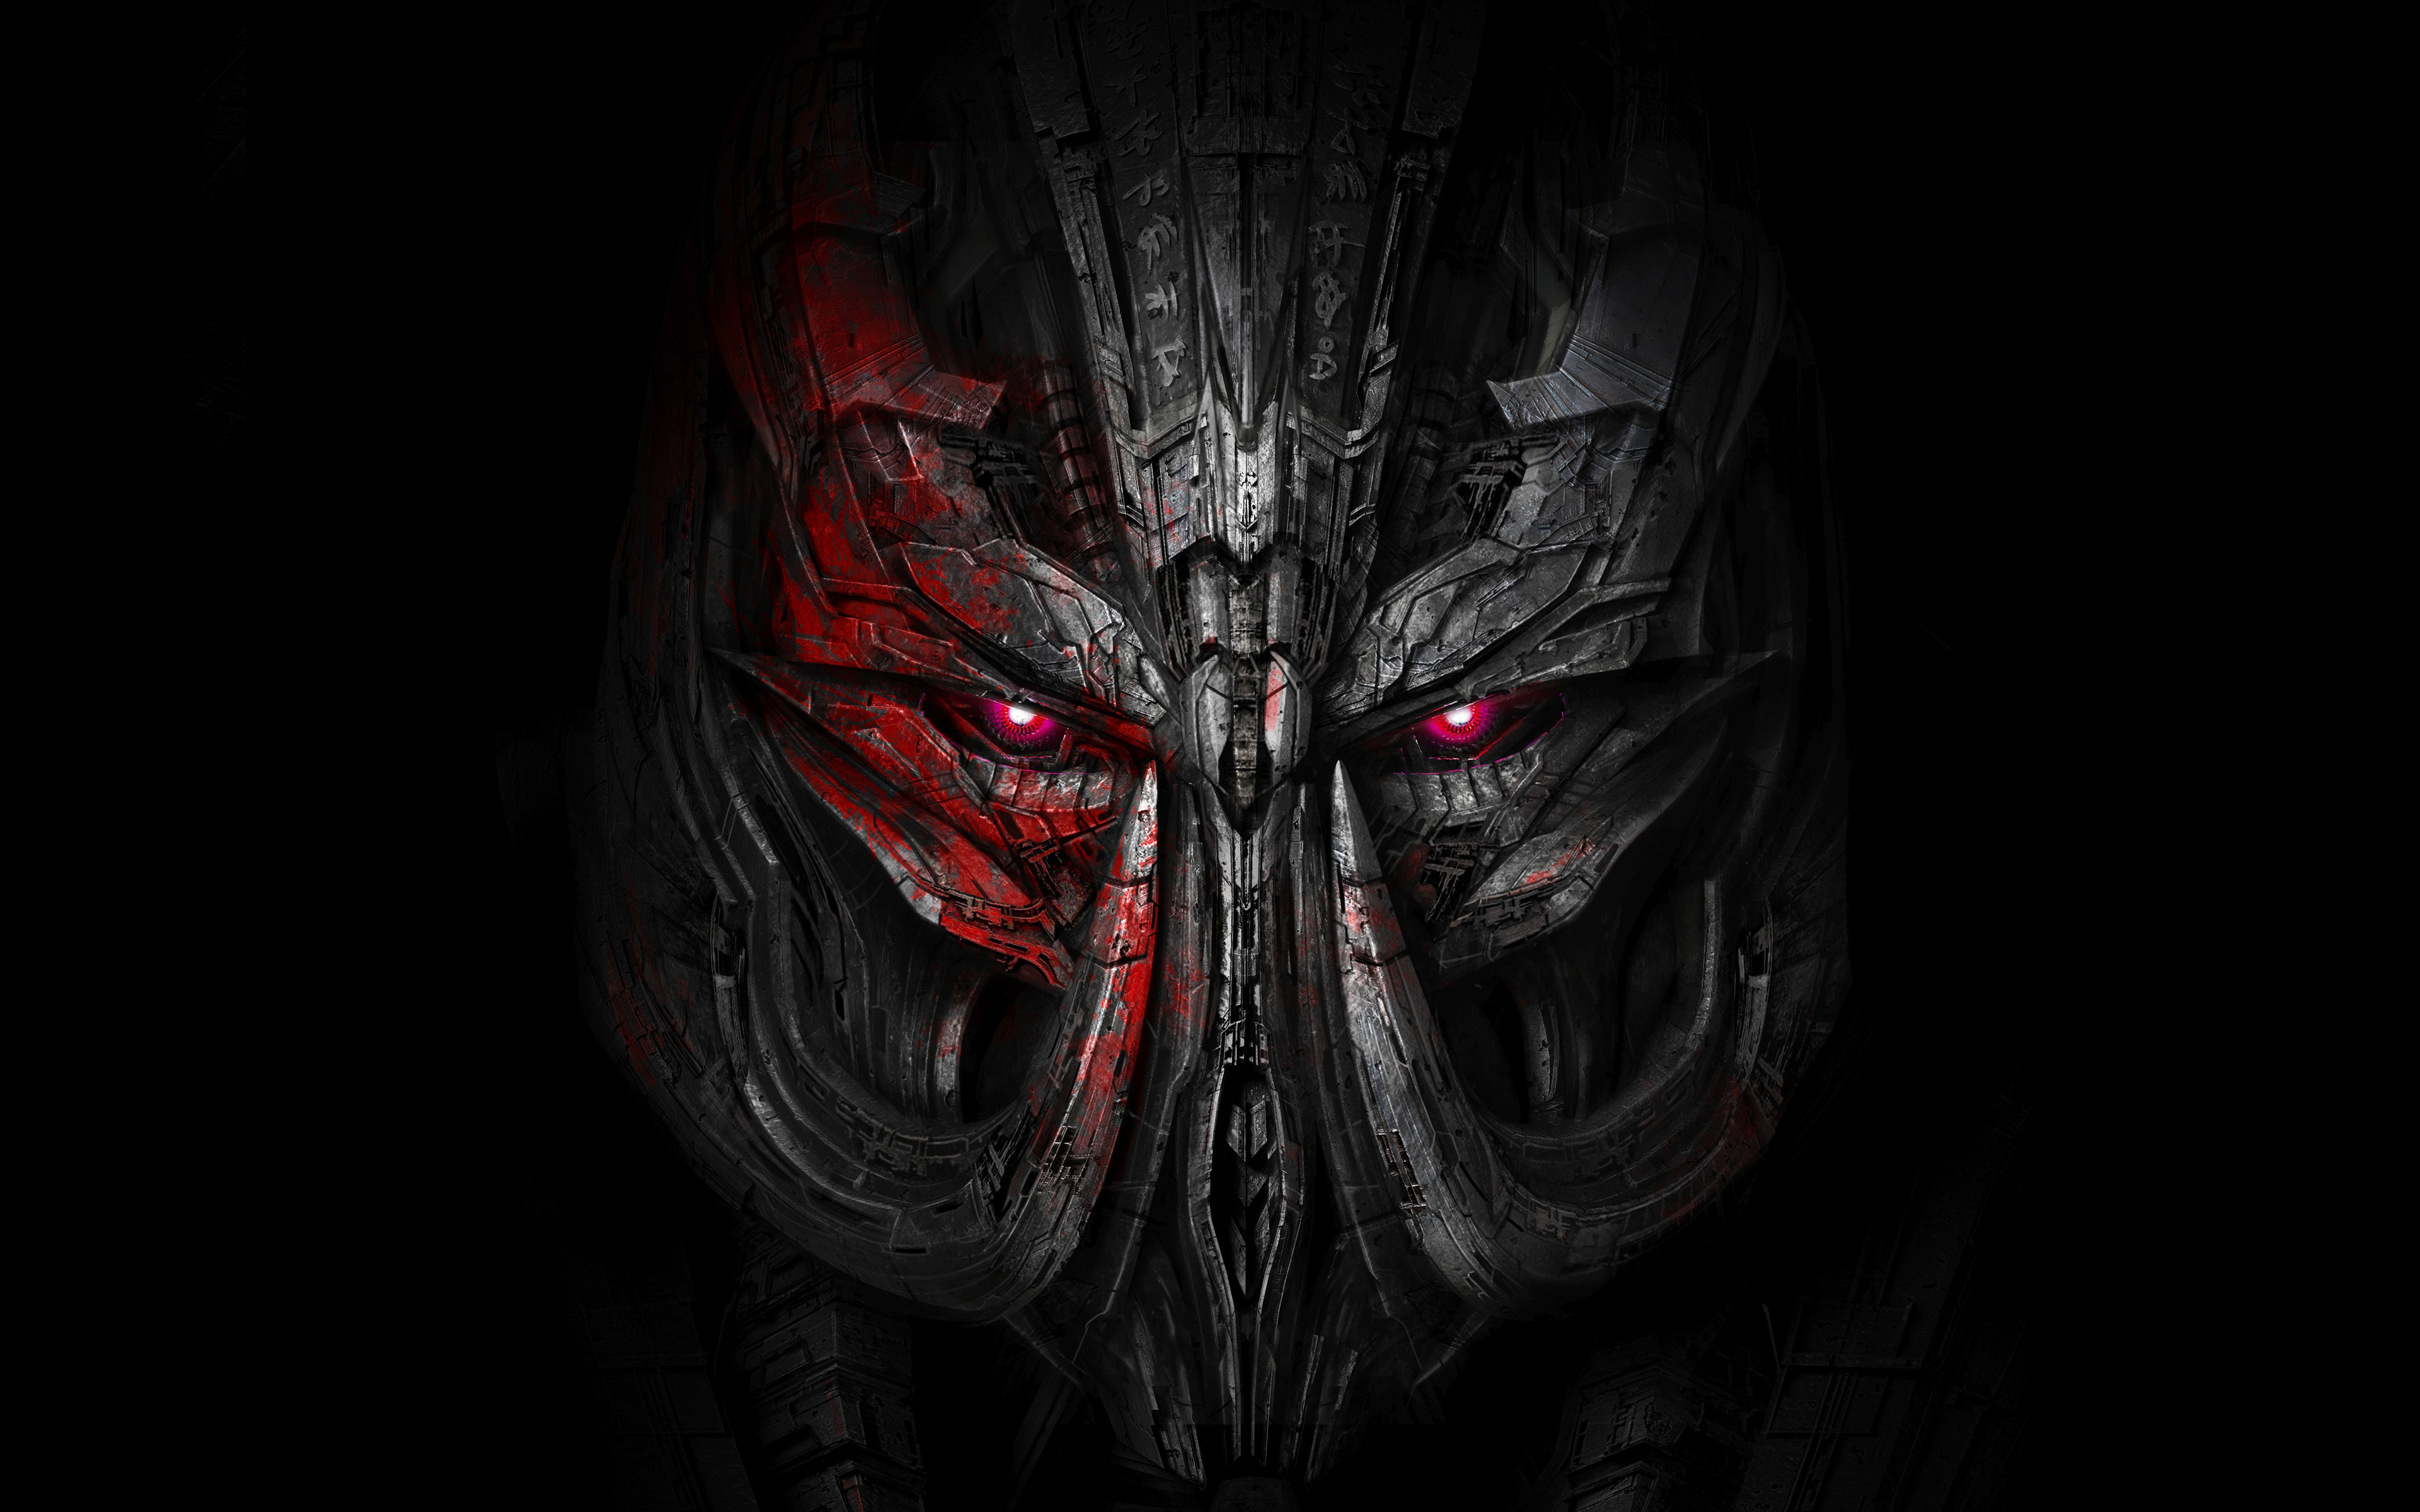 Megatron Transformers The Last Knight wallpaper